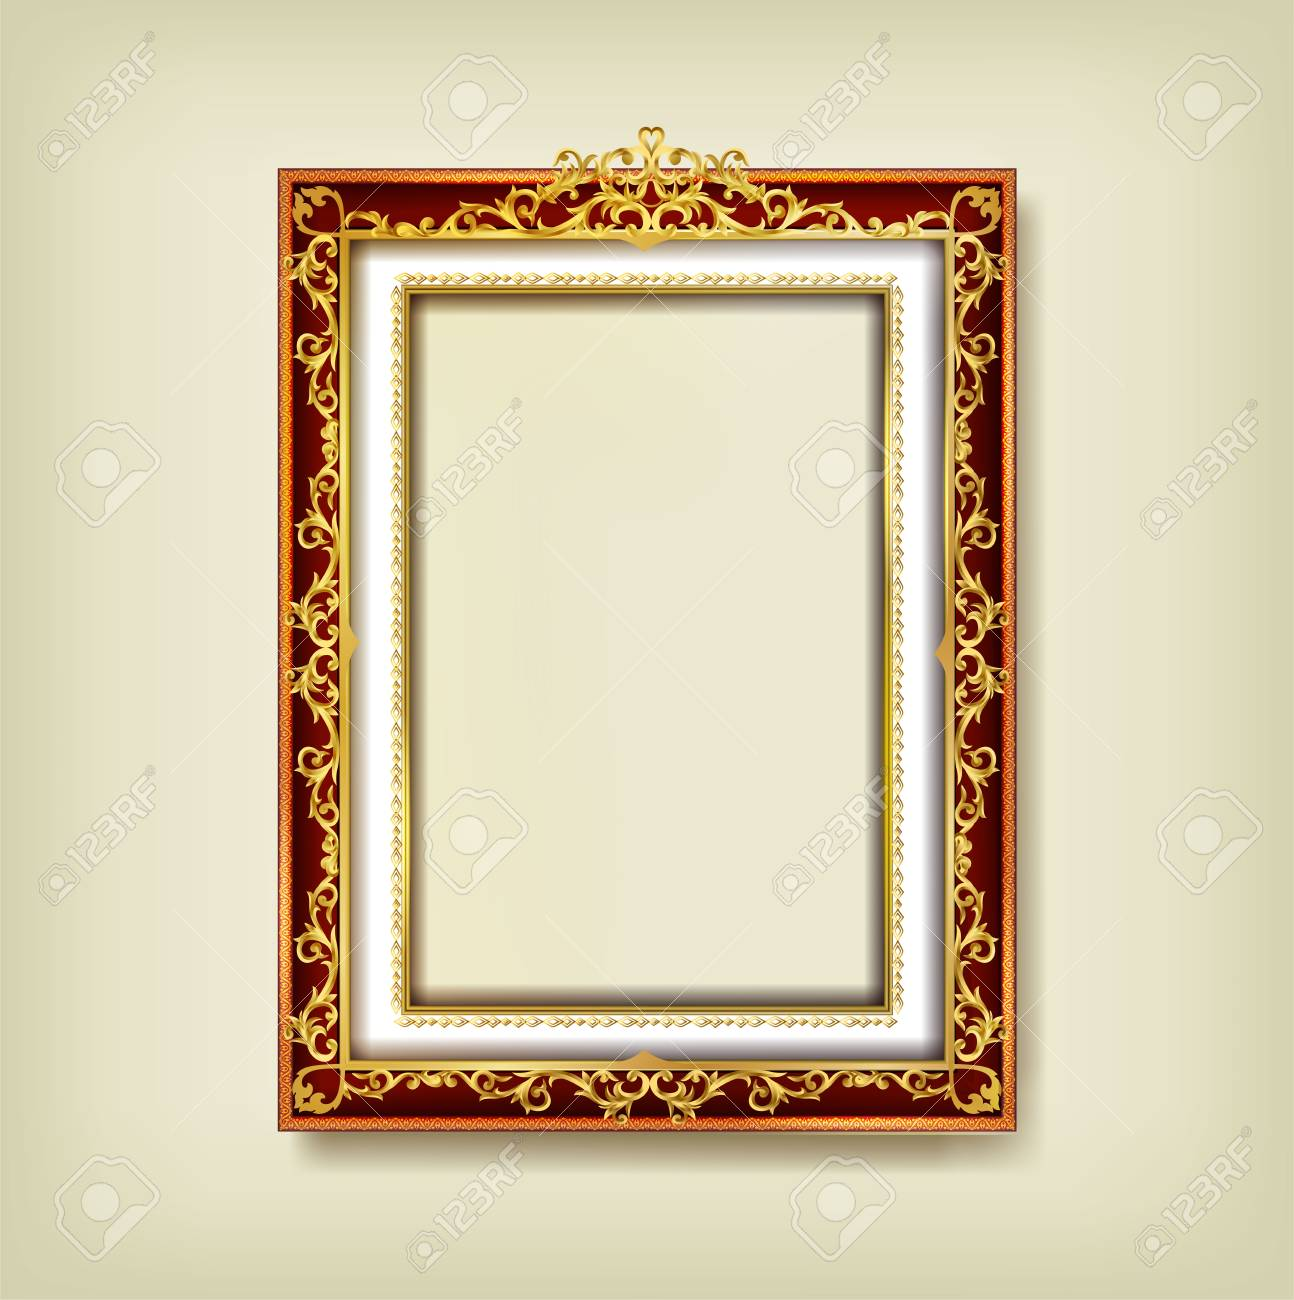 acf551184f7 ... Vector design decoration pattern style. border design is pattern Thai  art style. Decorative vintage frames and borders set,Gold photo frame with  corner ...